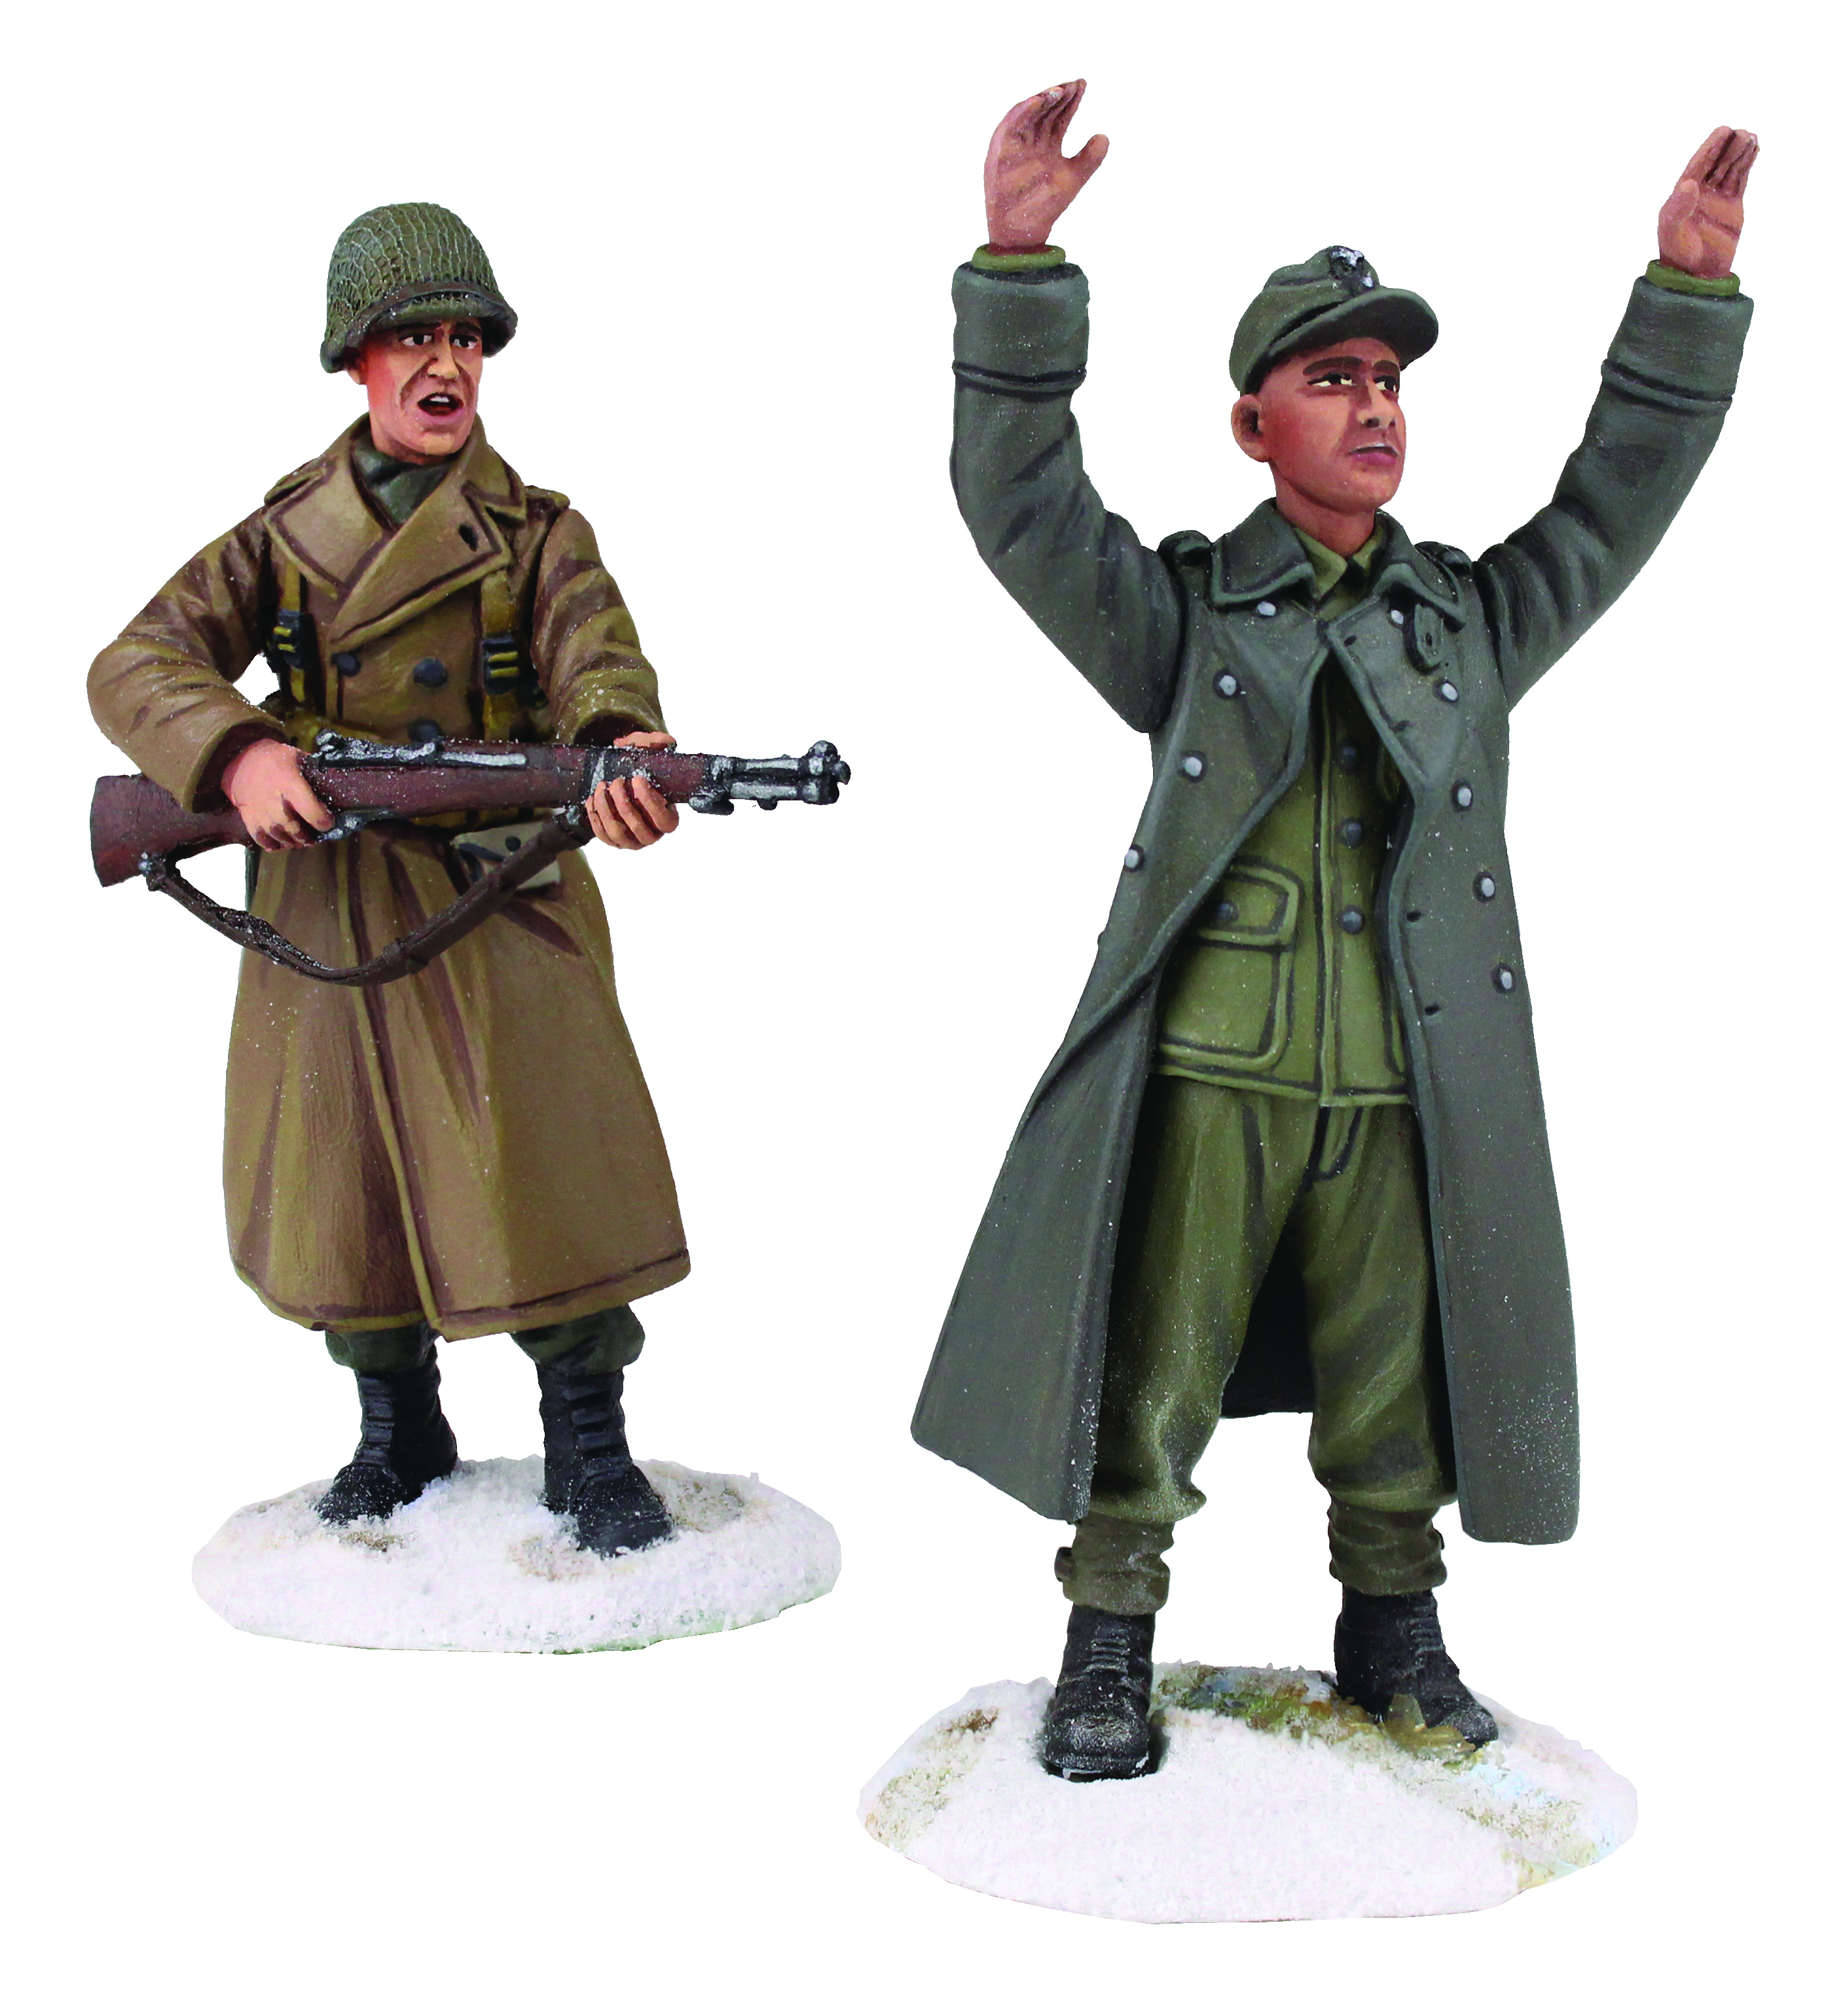 """""""Keep Your Hands Up Kid"""" - U.S Infantry Wearing Overcoat with M-1 Garand and Young German Prisoner with Hands Up - 2 Piece Set"""